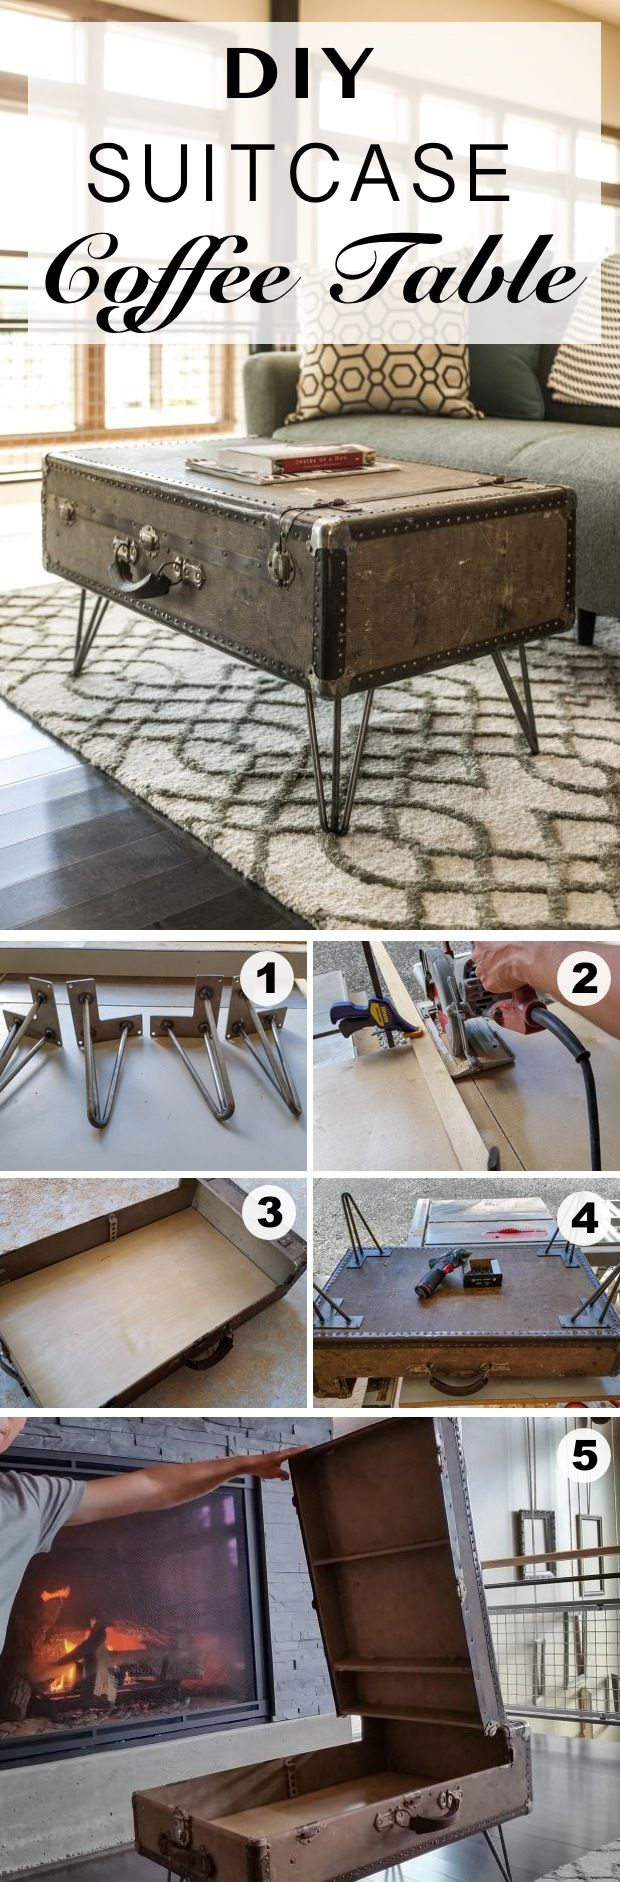 Iron Gate Coffee Table 17 Best Ideas About Old Coffee Tables On Pinterest Refurbished